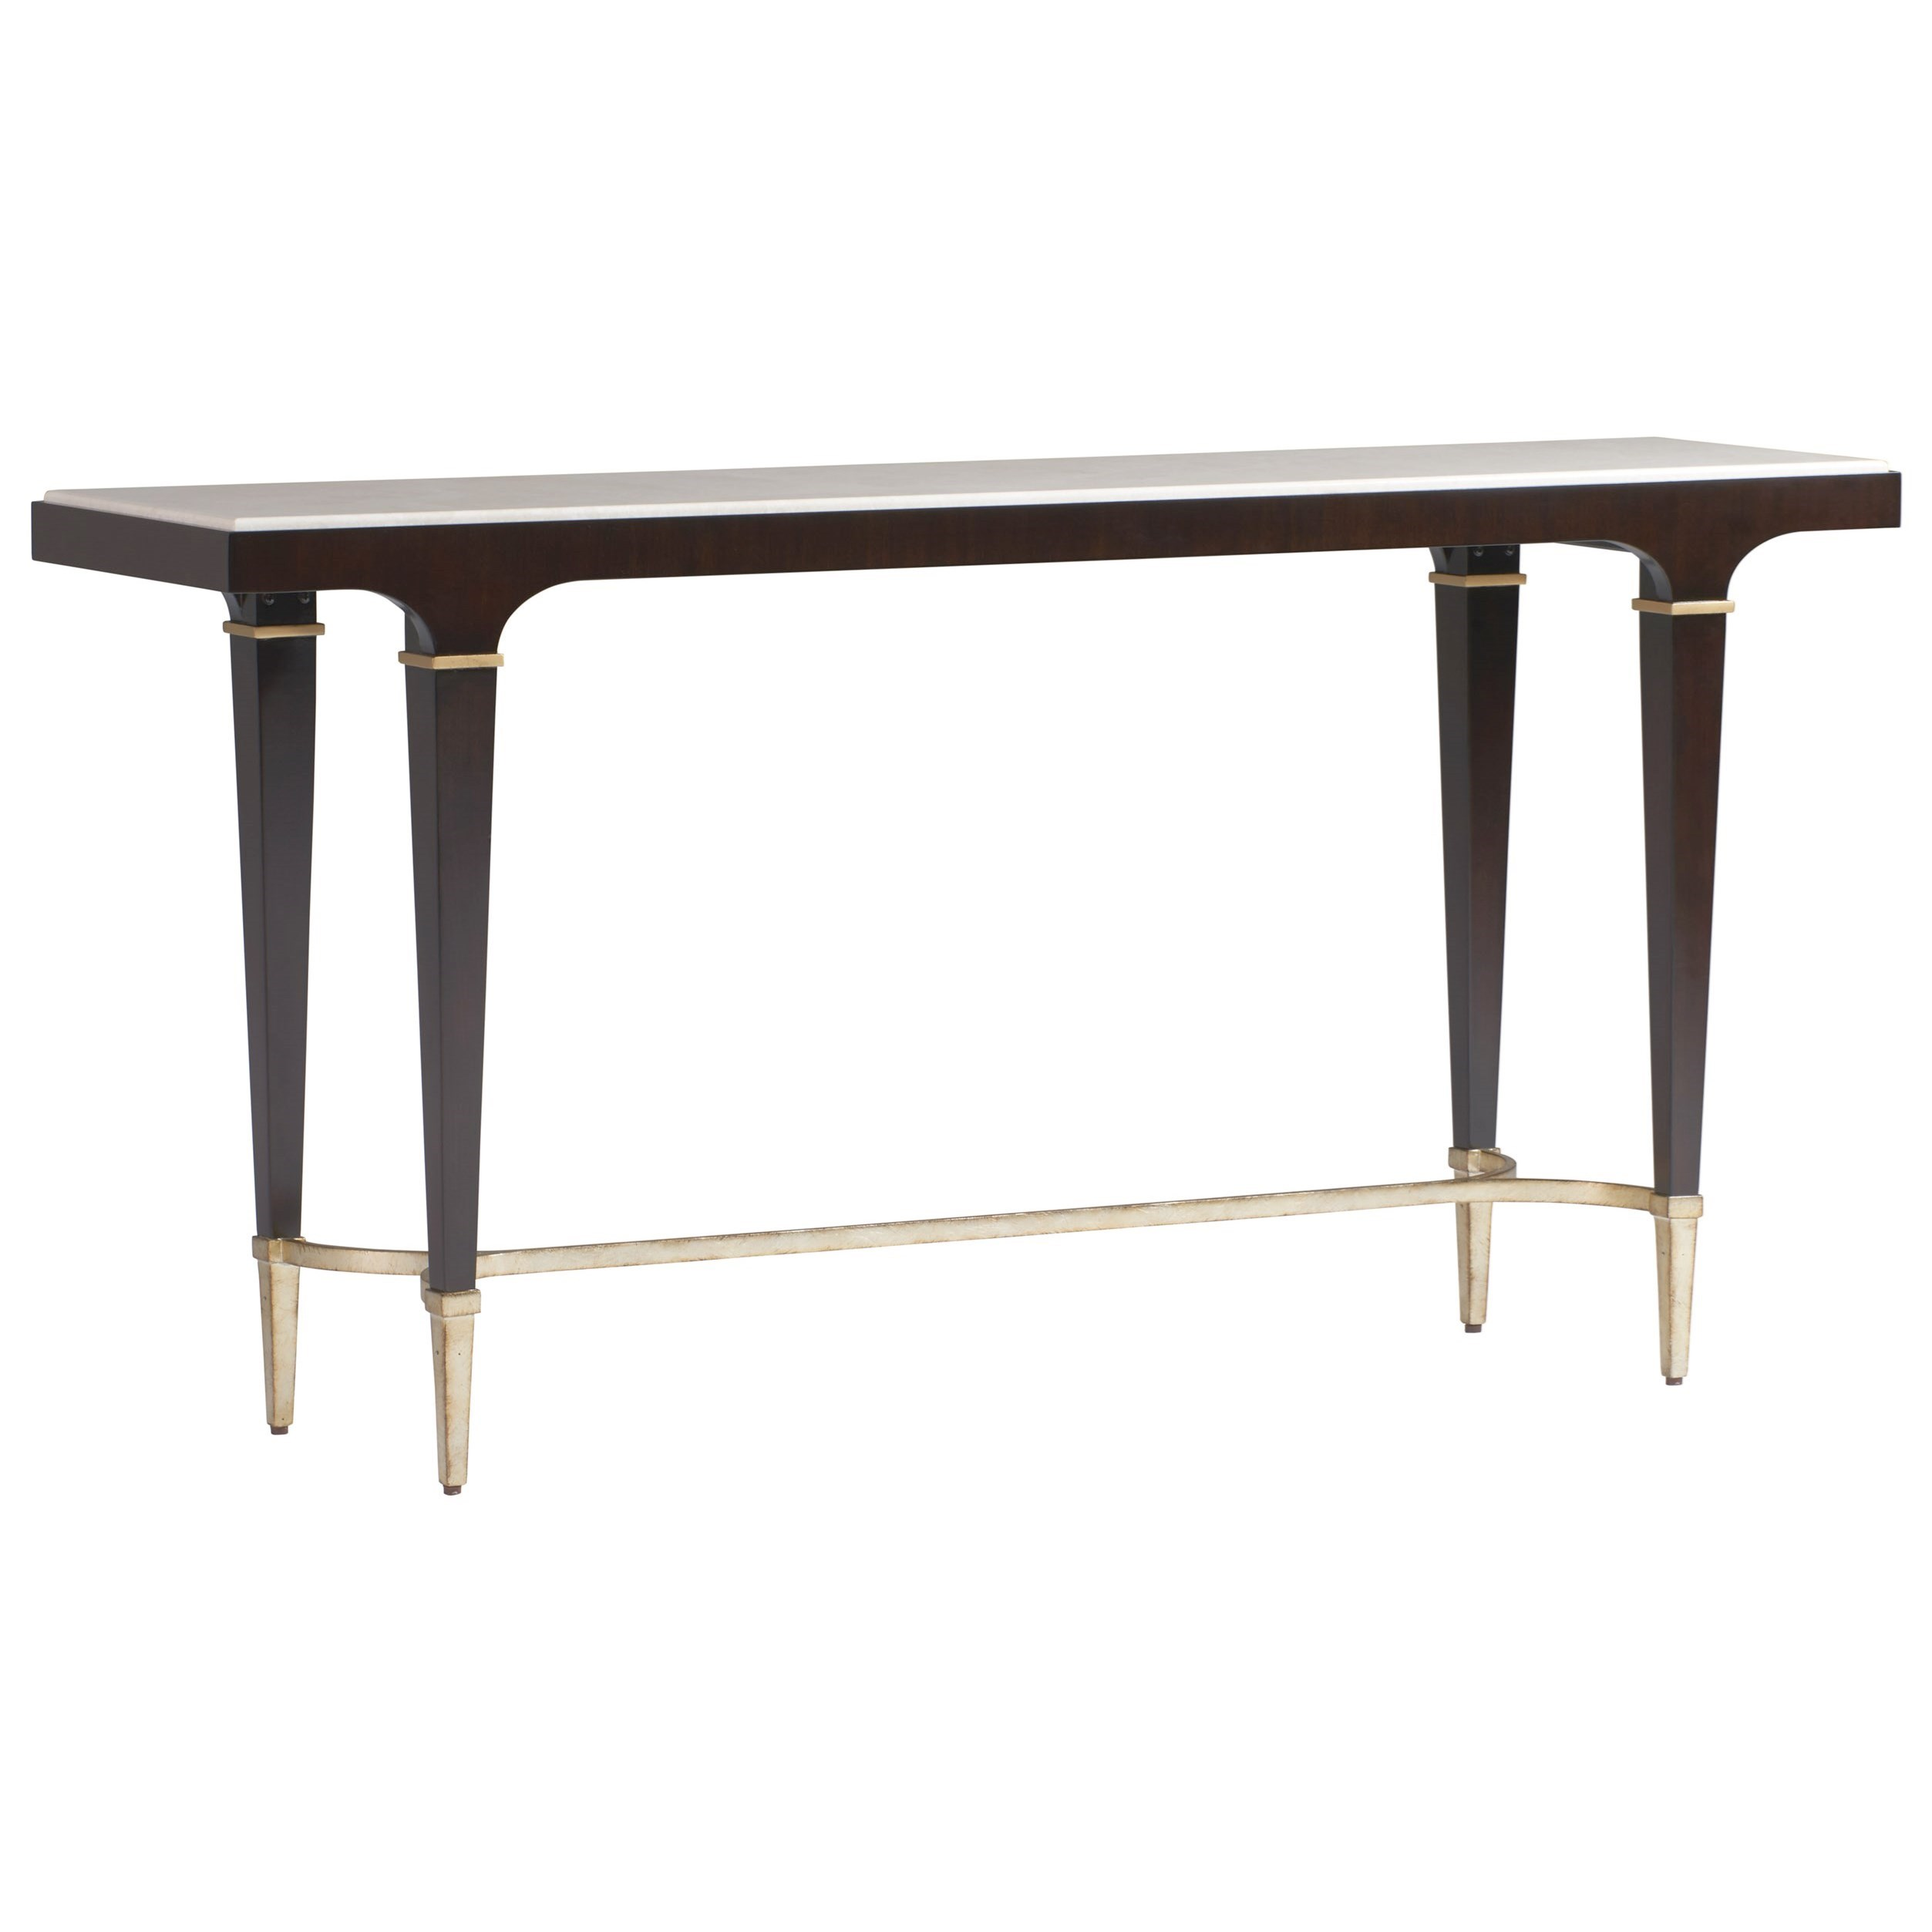 Enjoyable Lexington Carlyle 736 966 Beekman Sofa Console Table With Ncnpc Chair Design For Home Ncnpcorg